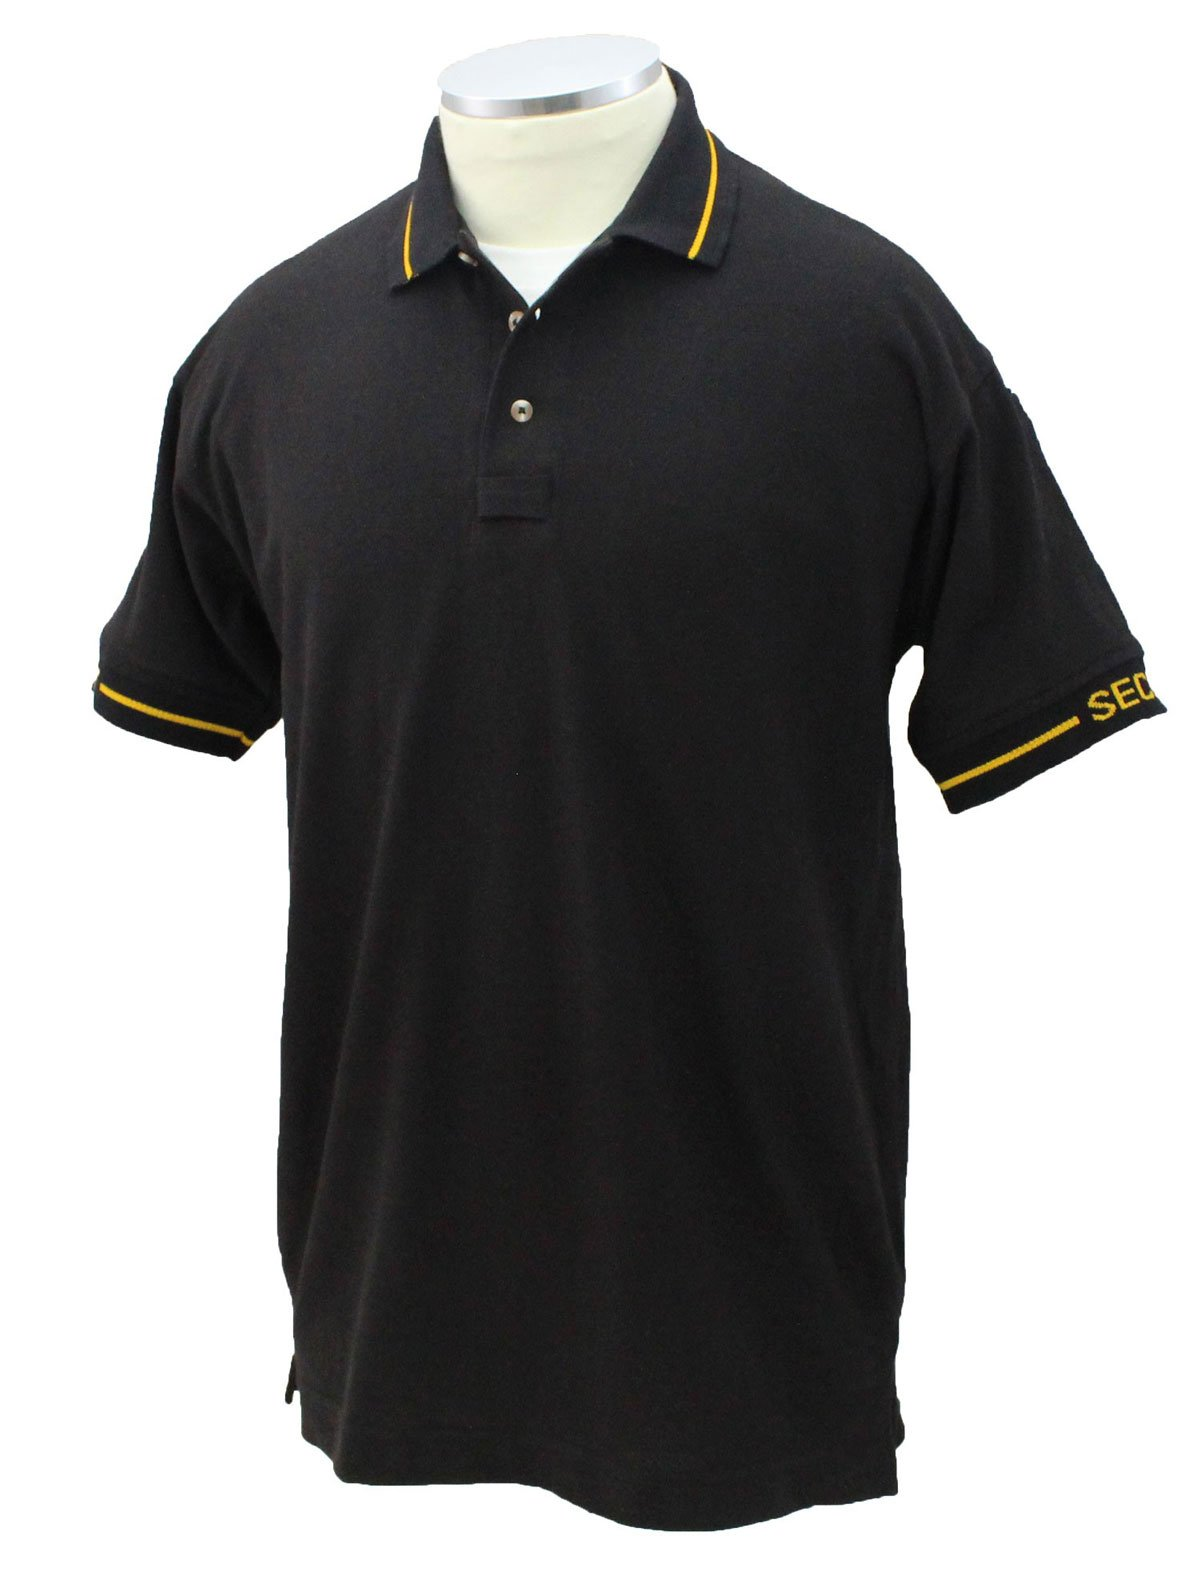 First Class Poly/Cotton 60%/40% Security Polo Shirts (Small, Black W/Gold)